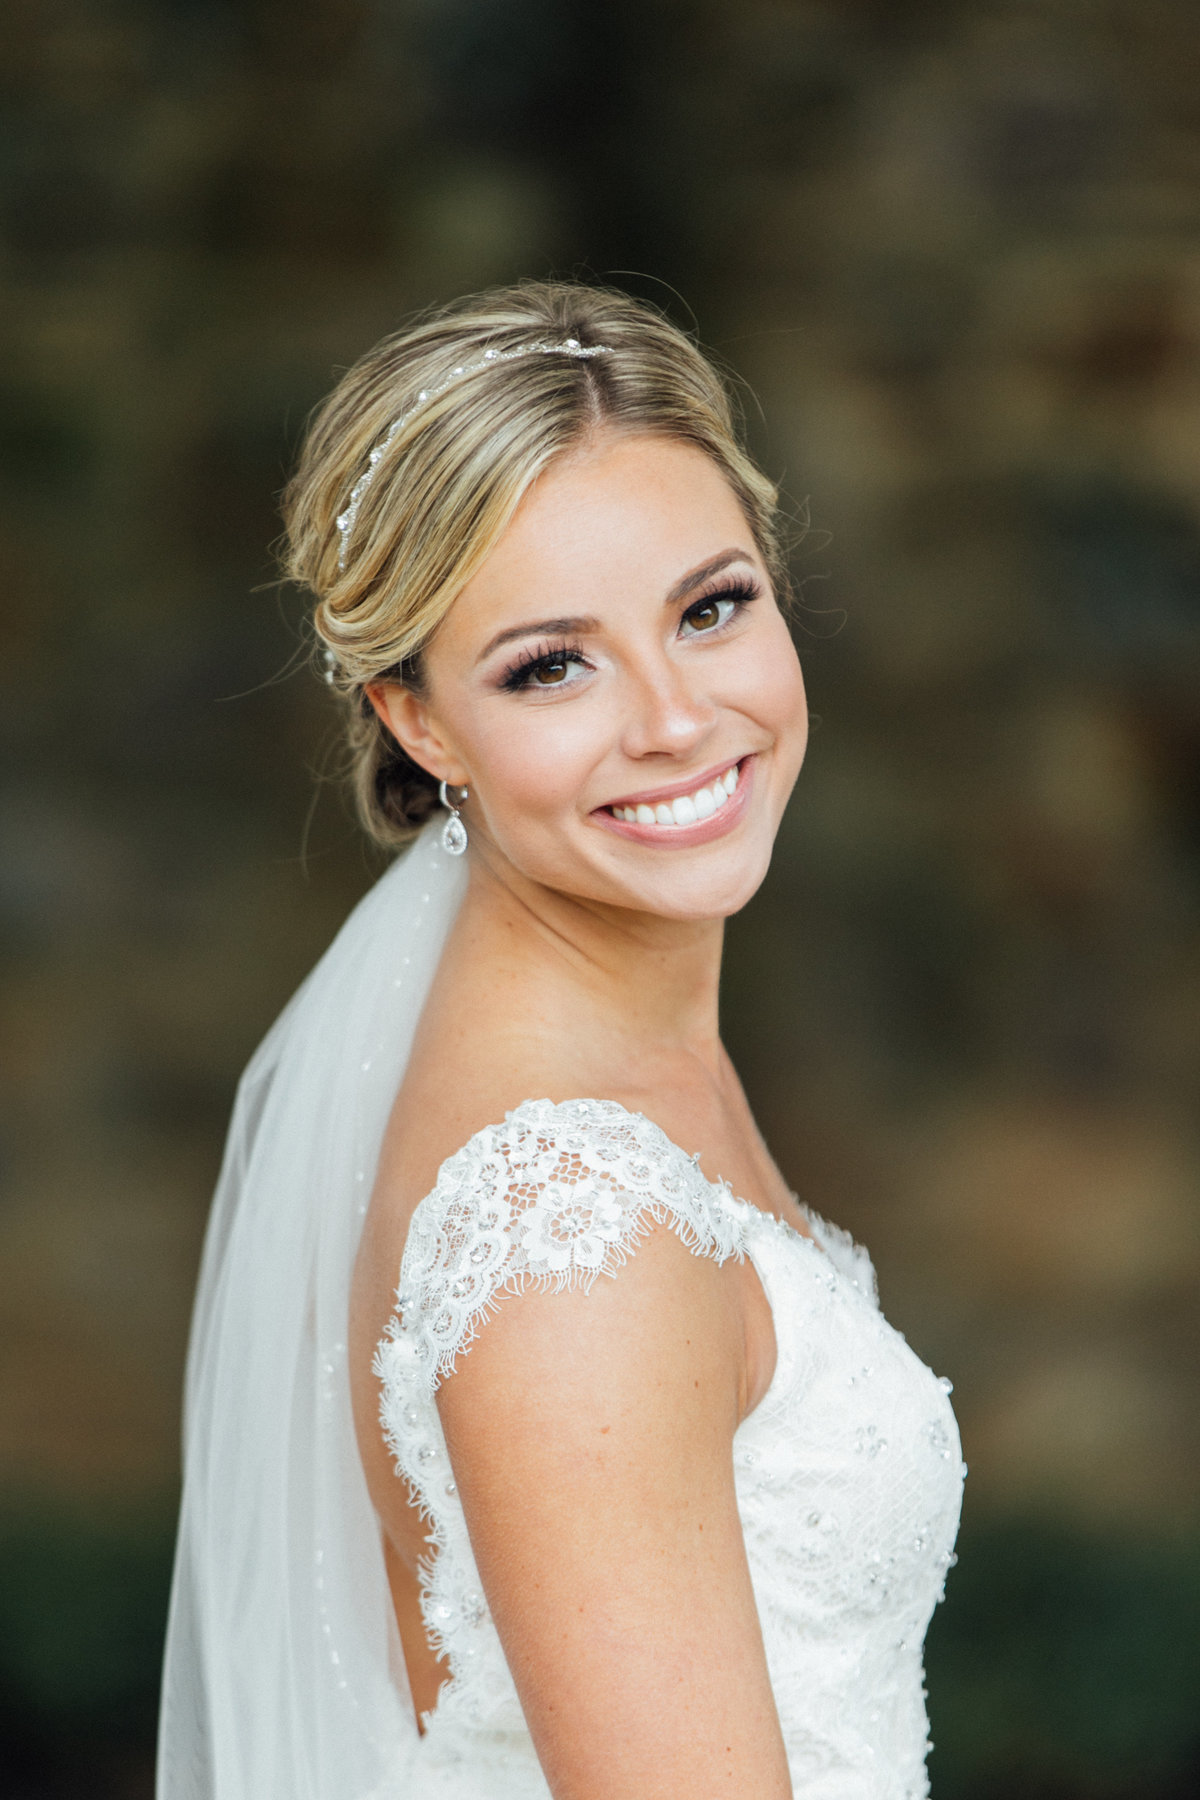 Beautiful Bride at Hillendale Country Club wedding